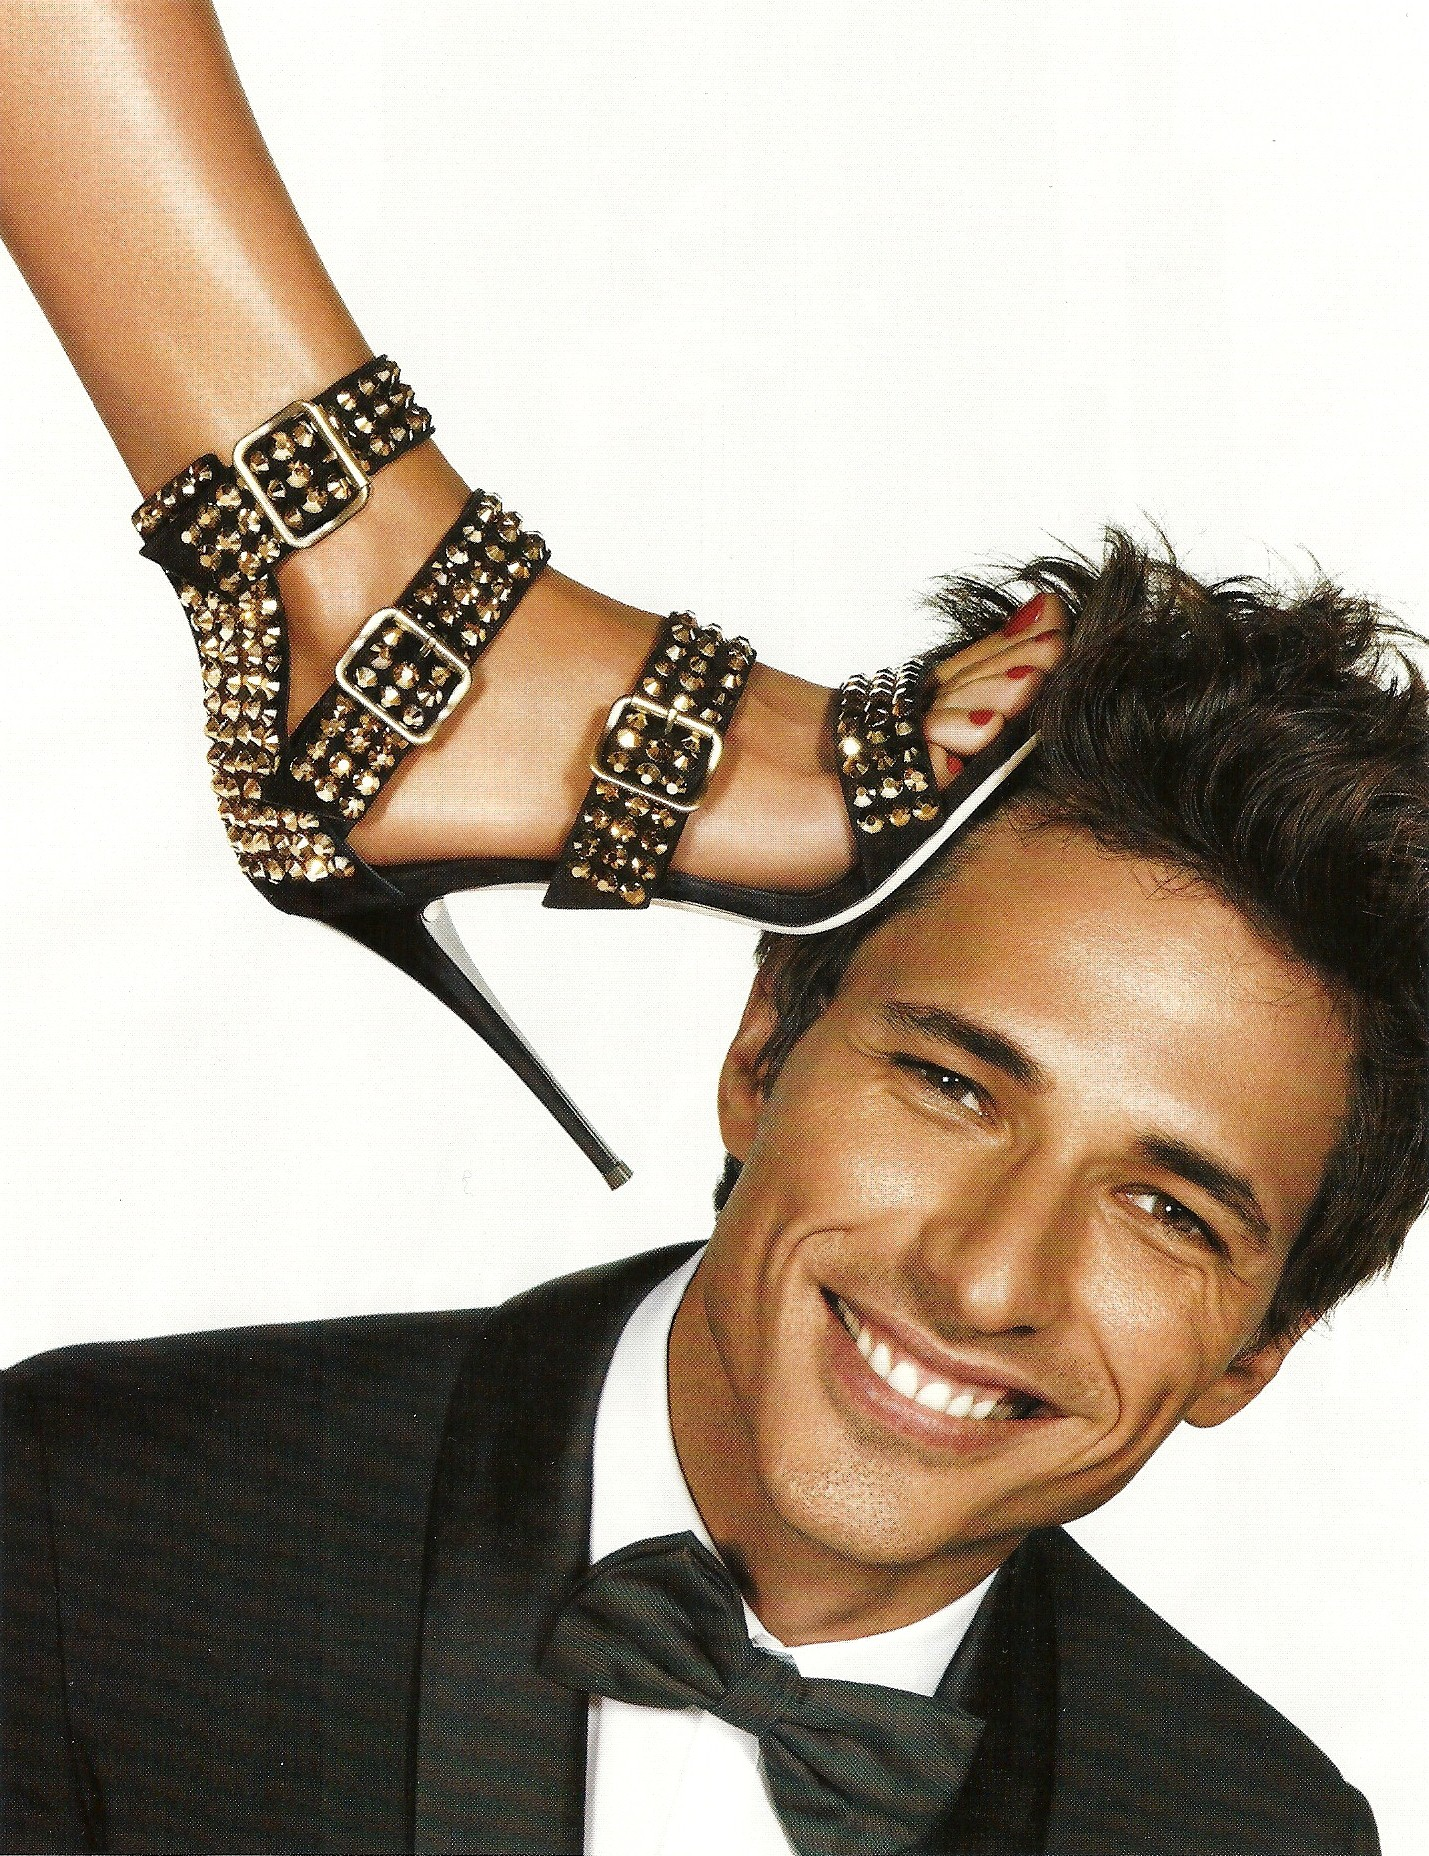 Art8amby S Blog: Another Giuseppe Zanotti Spring Summer 2010 Ad Campaign